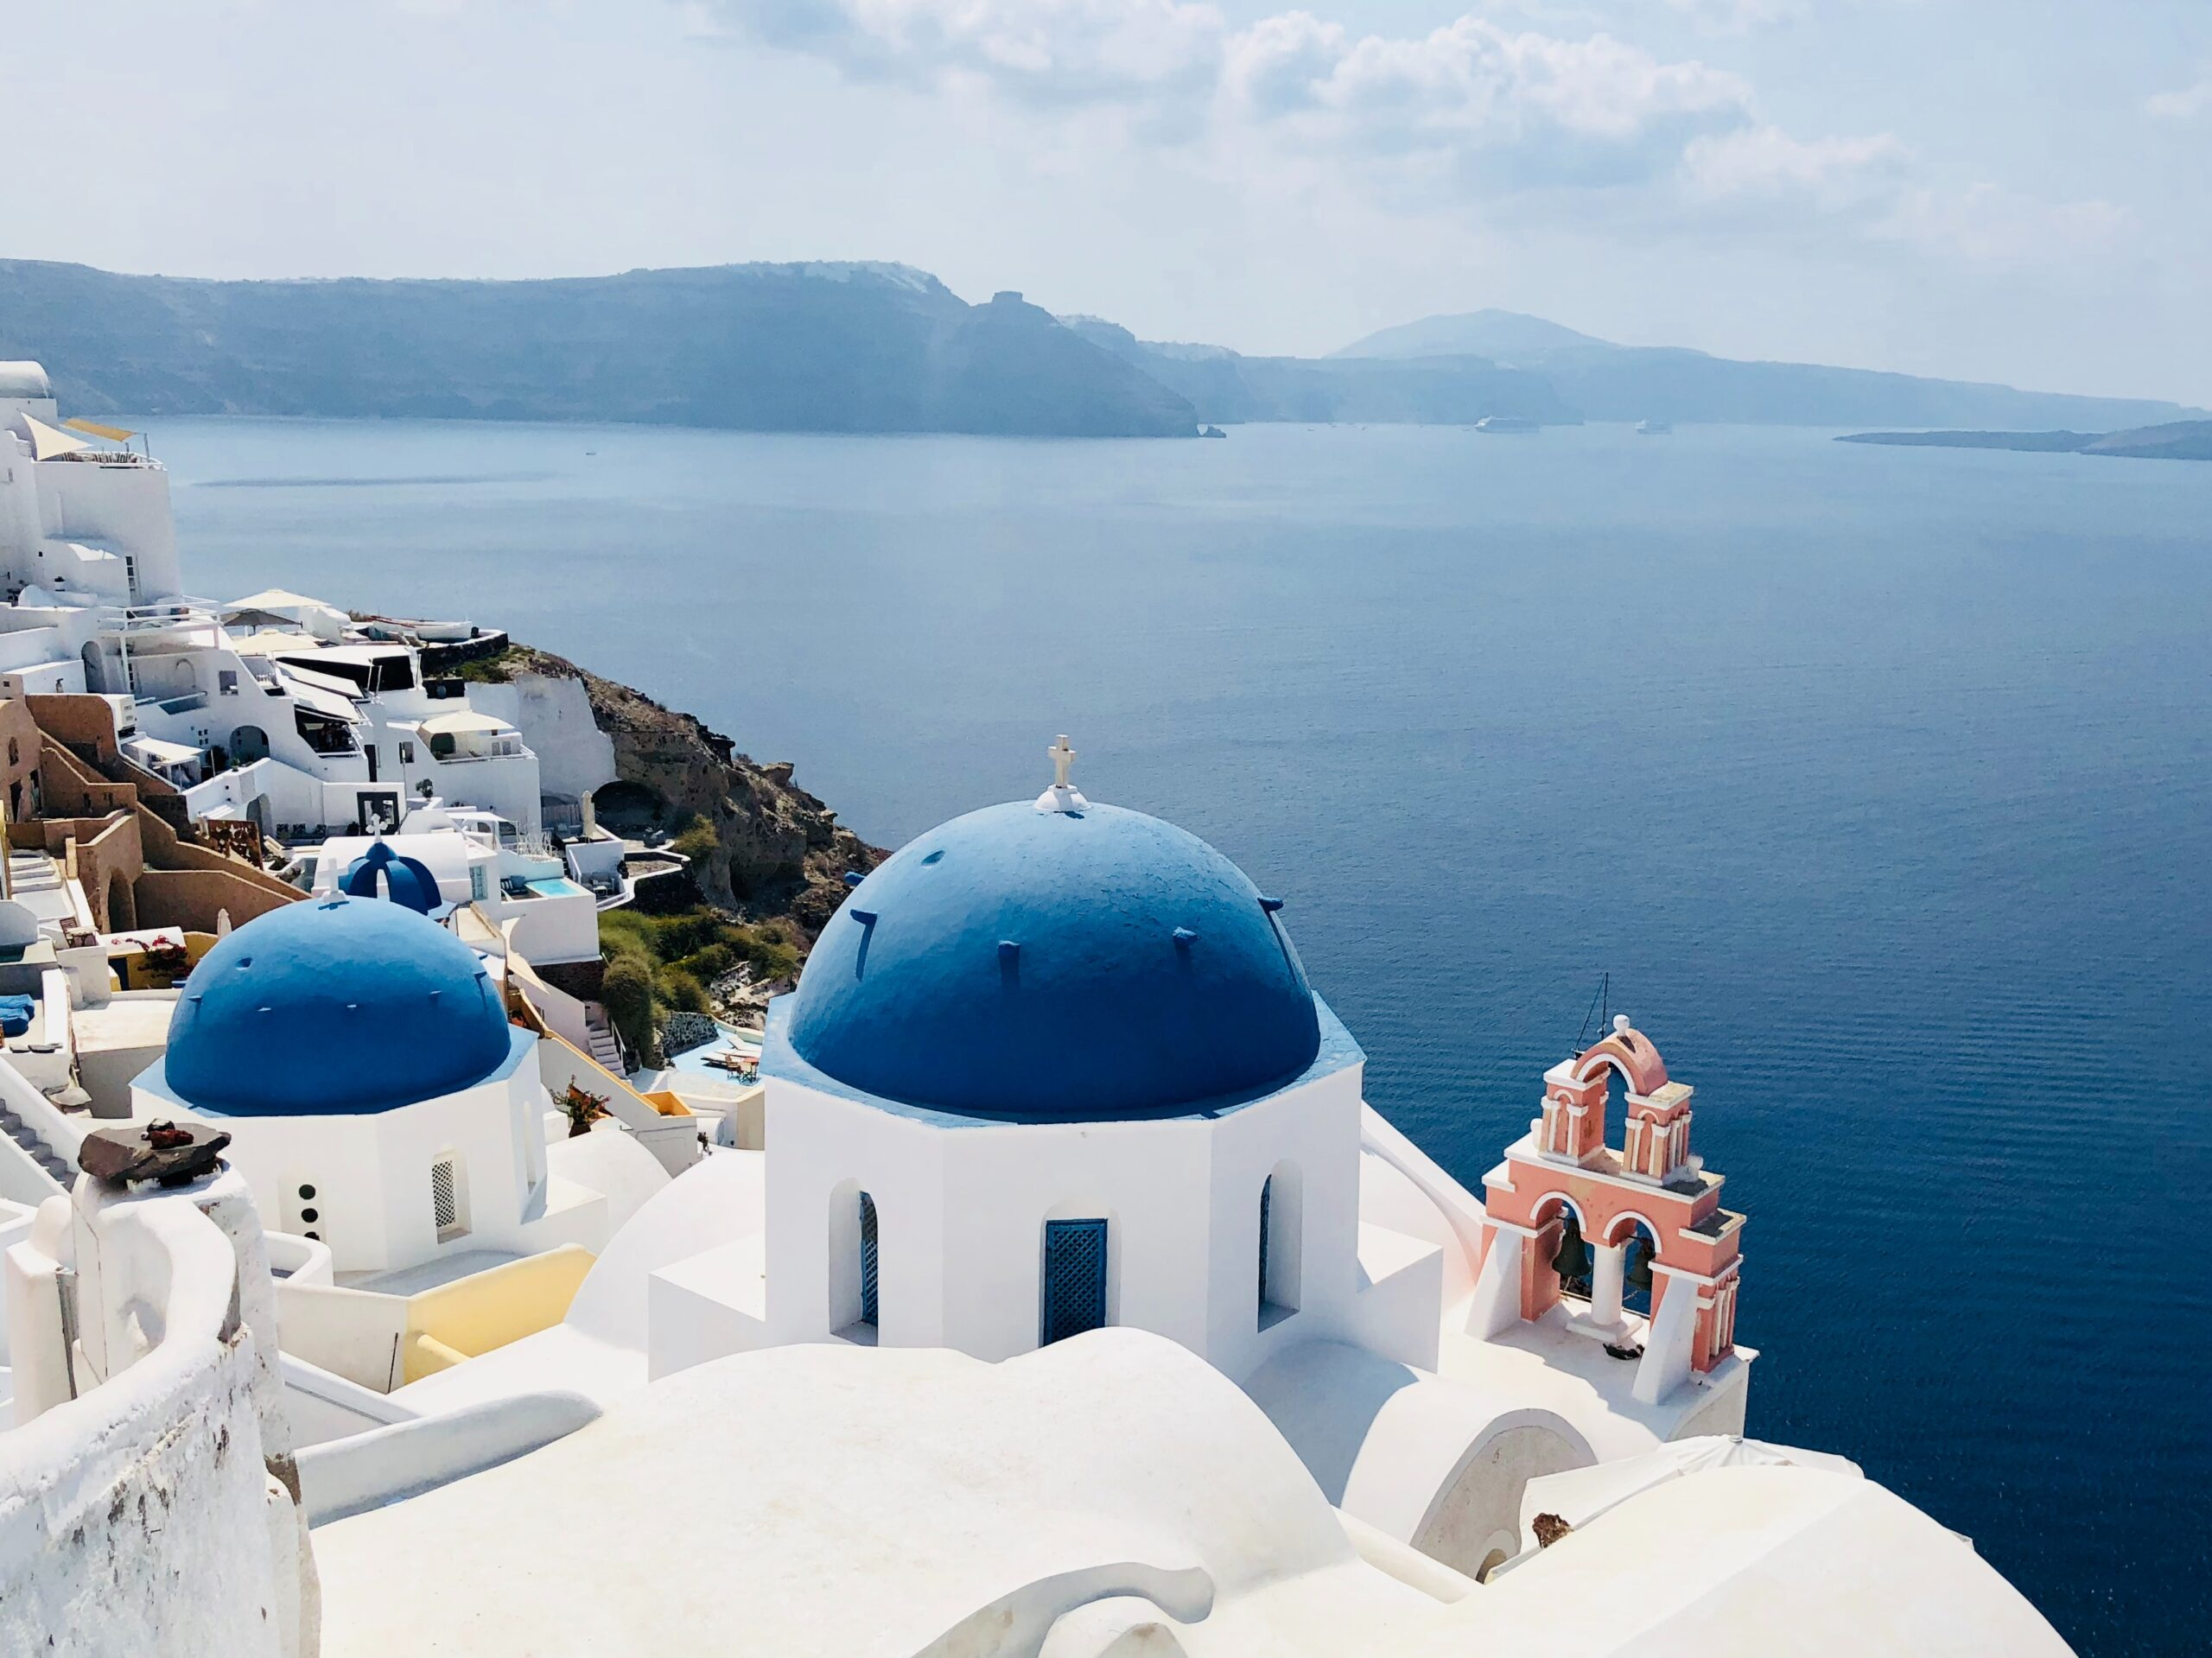 4 + 1 Beautiful Villages In Santorini That Should Be On Your Bucket List